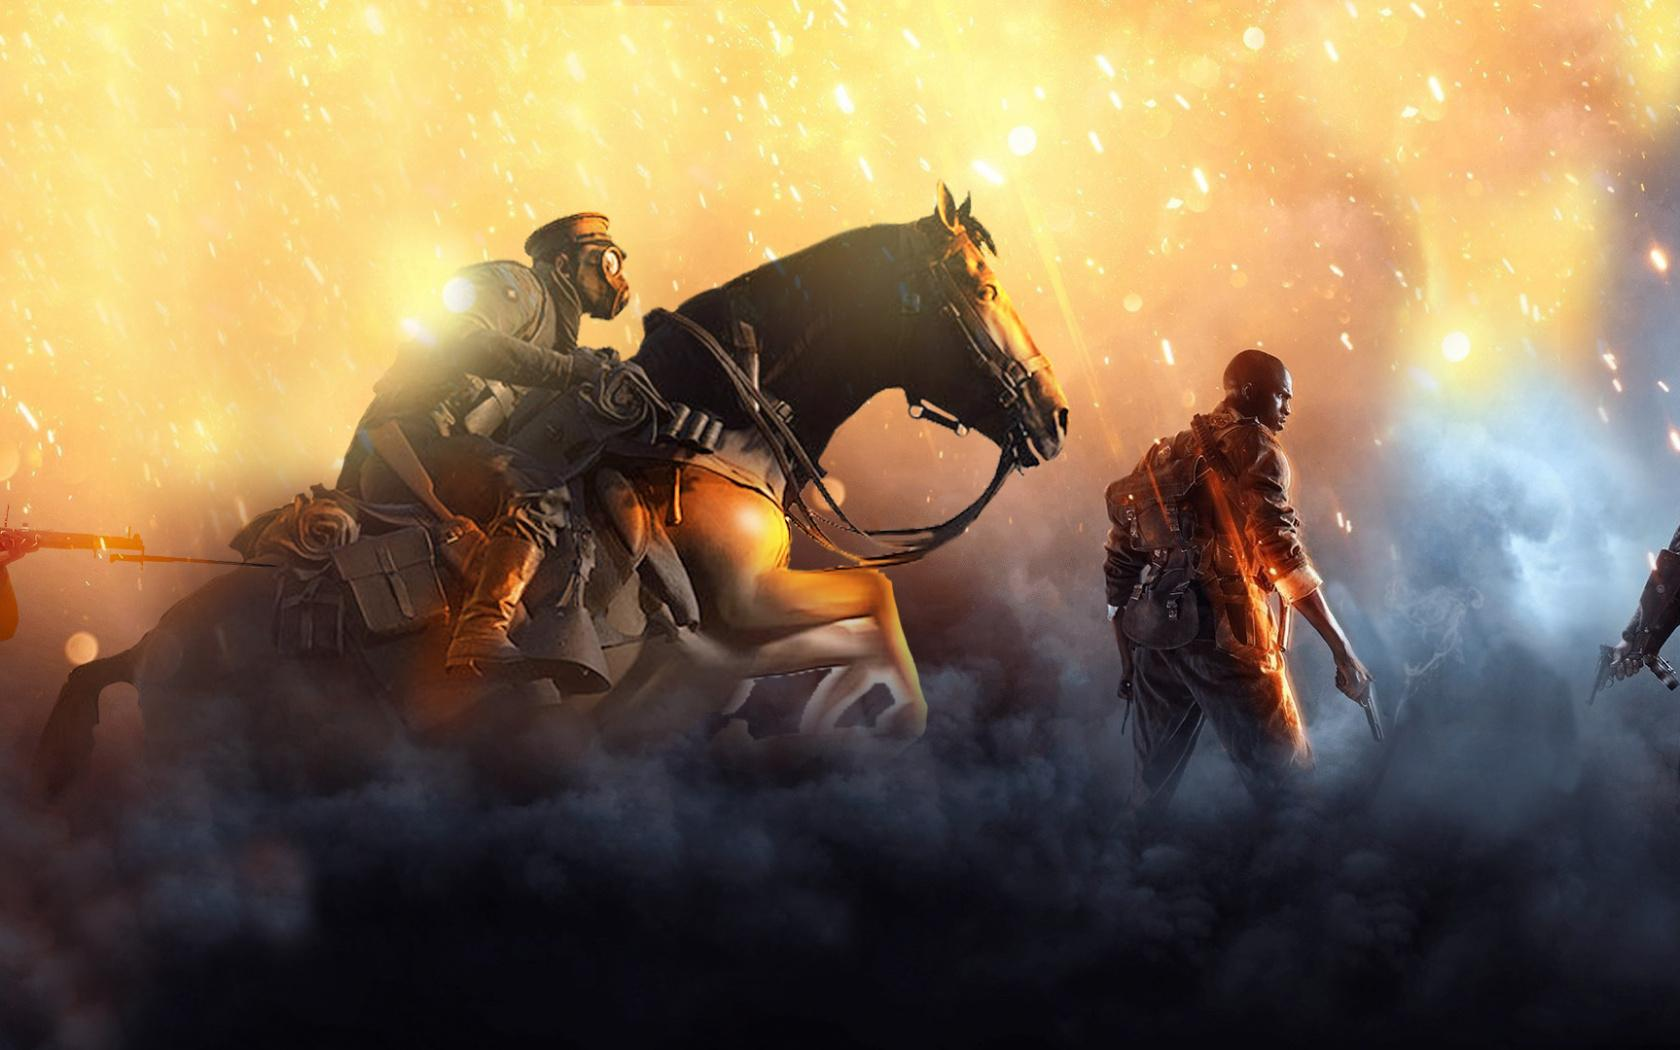 Download 1680x1050 Wallpapers Playstation 4, Battlefield 1942